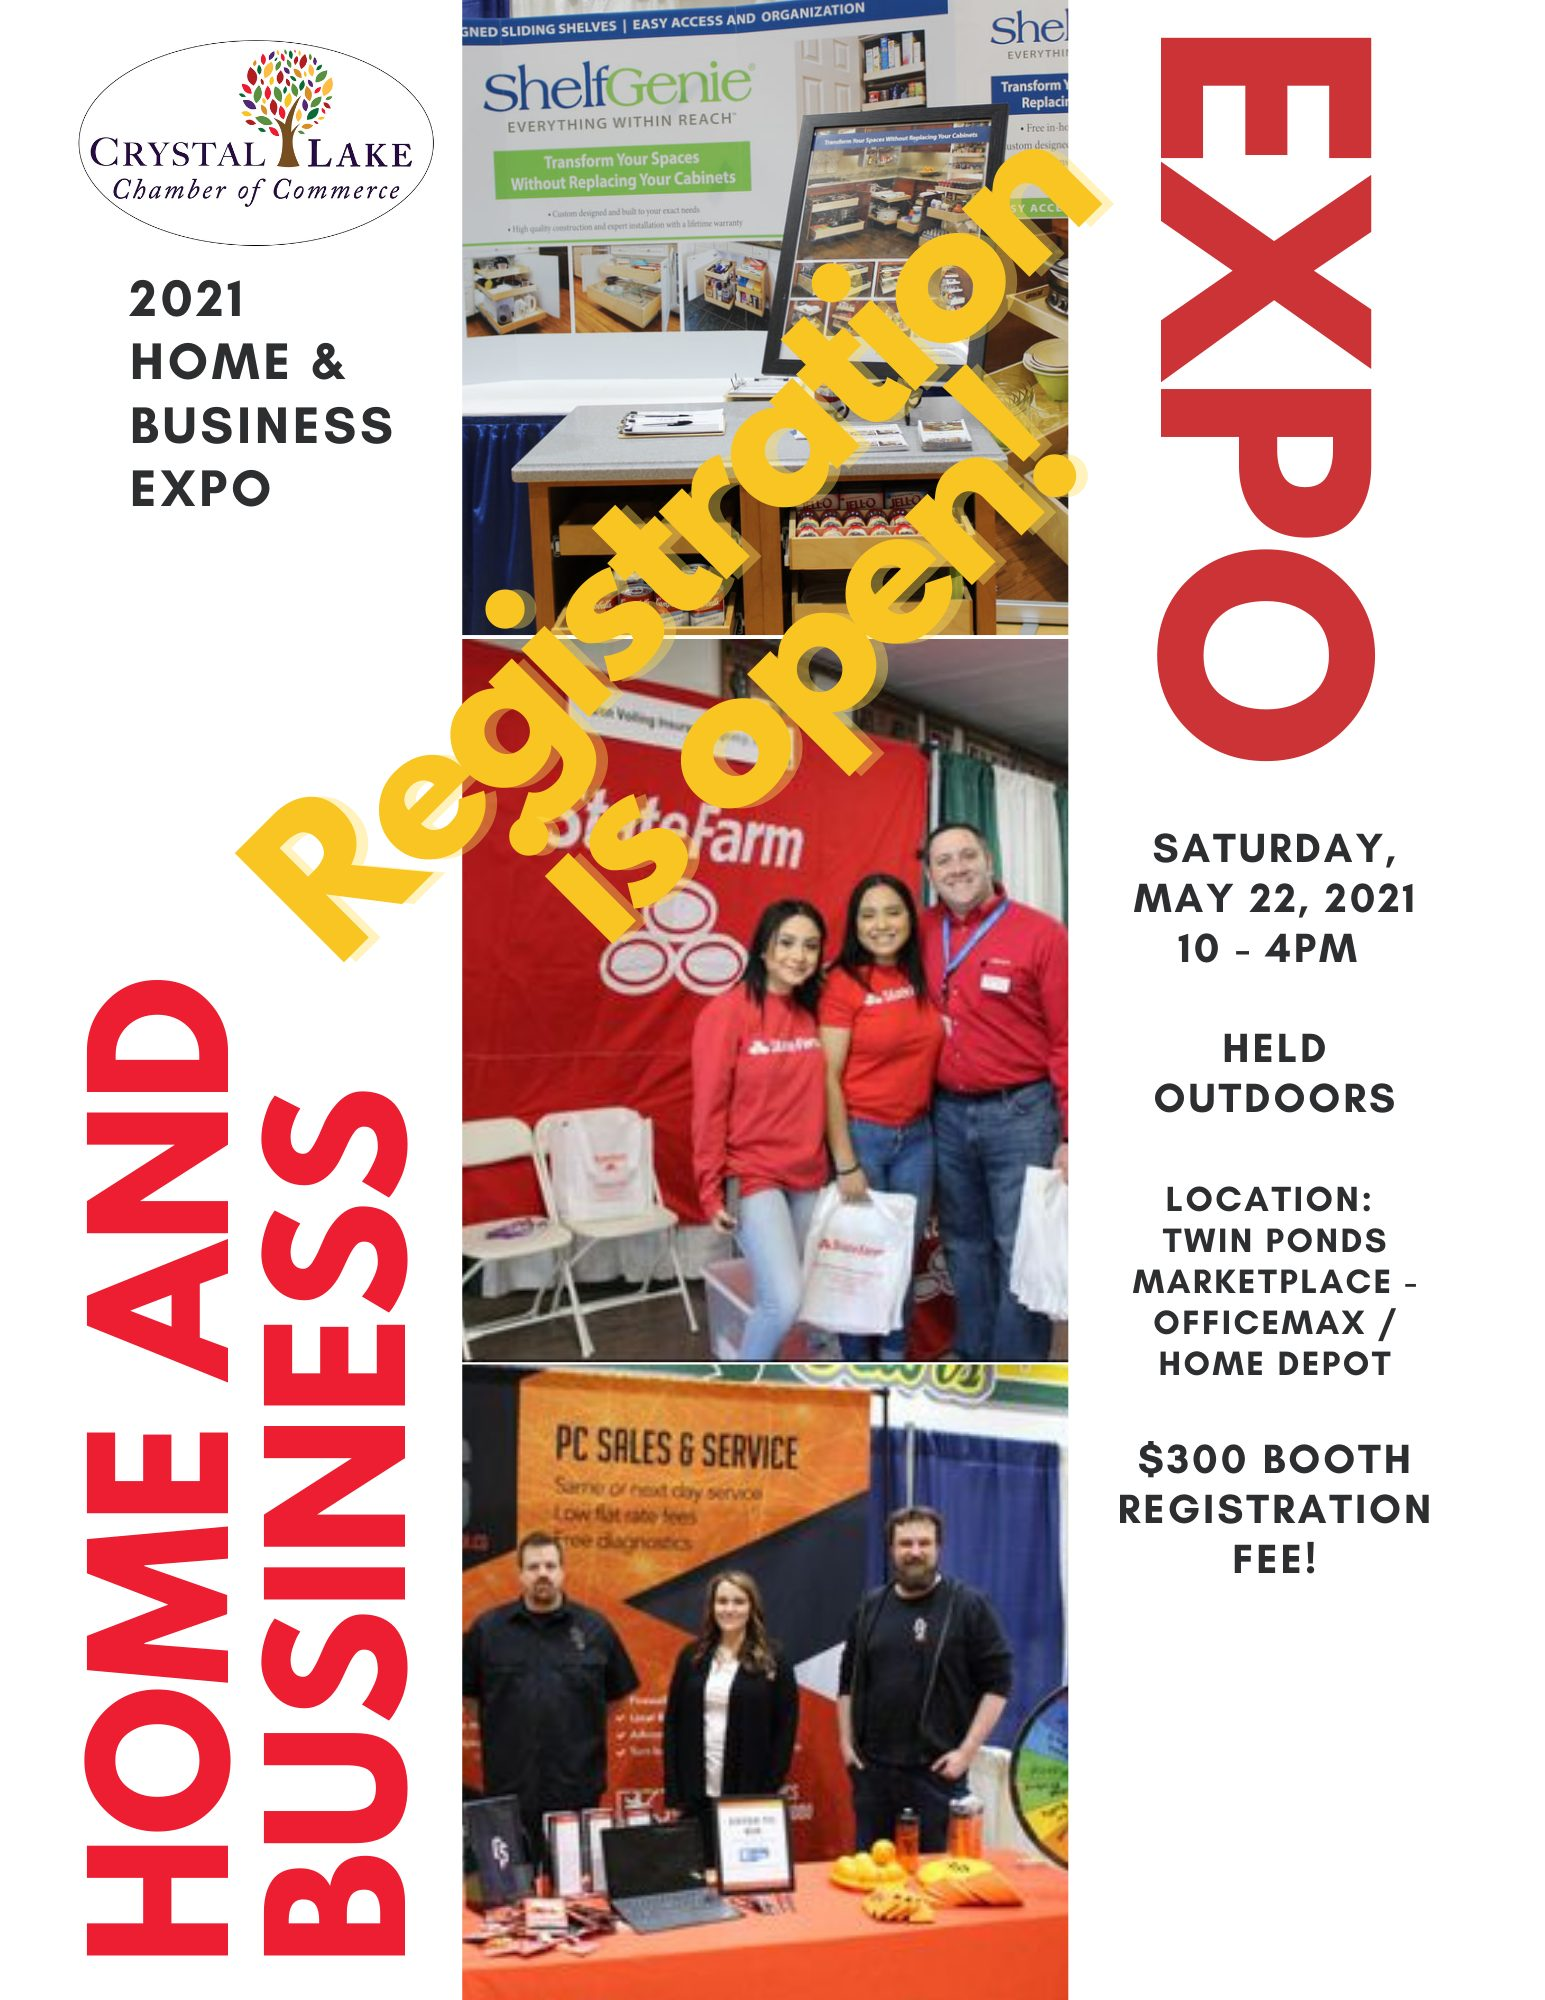 2021 home and business expo flyer